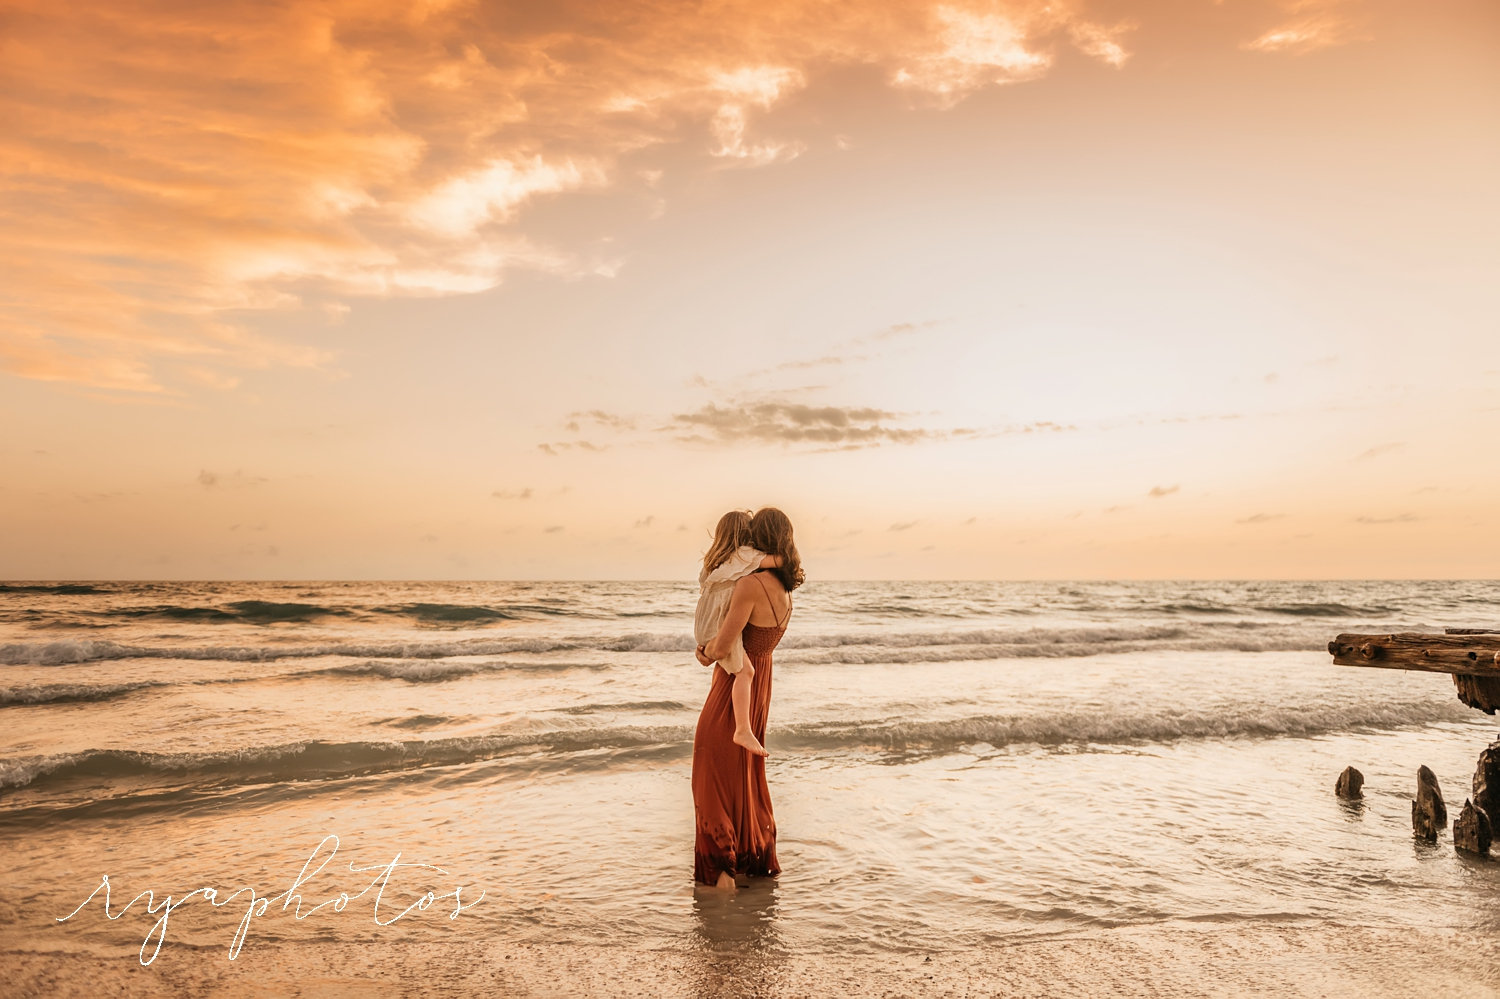 mother holding young daughter at the beach at sunset, Florida, Ryaphotos